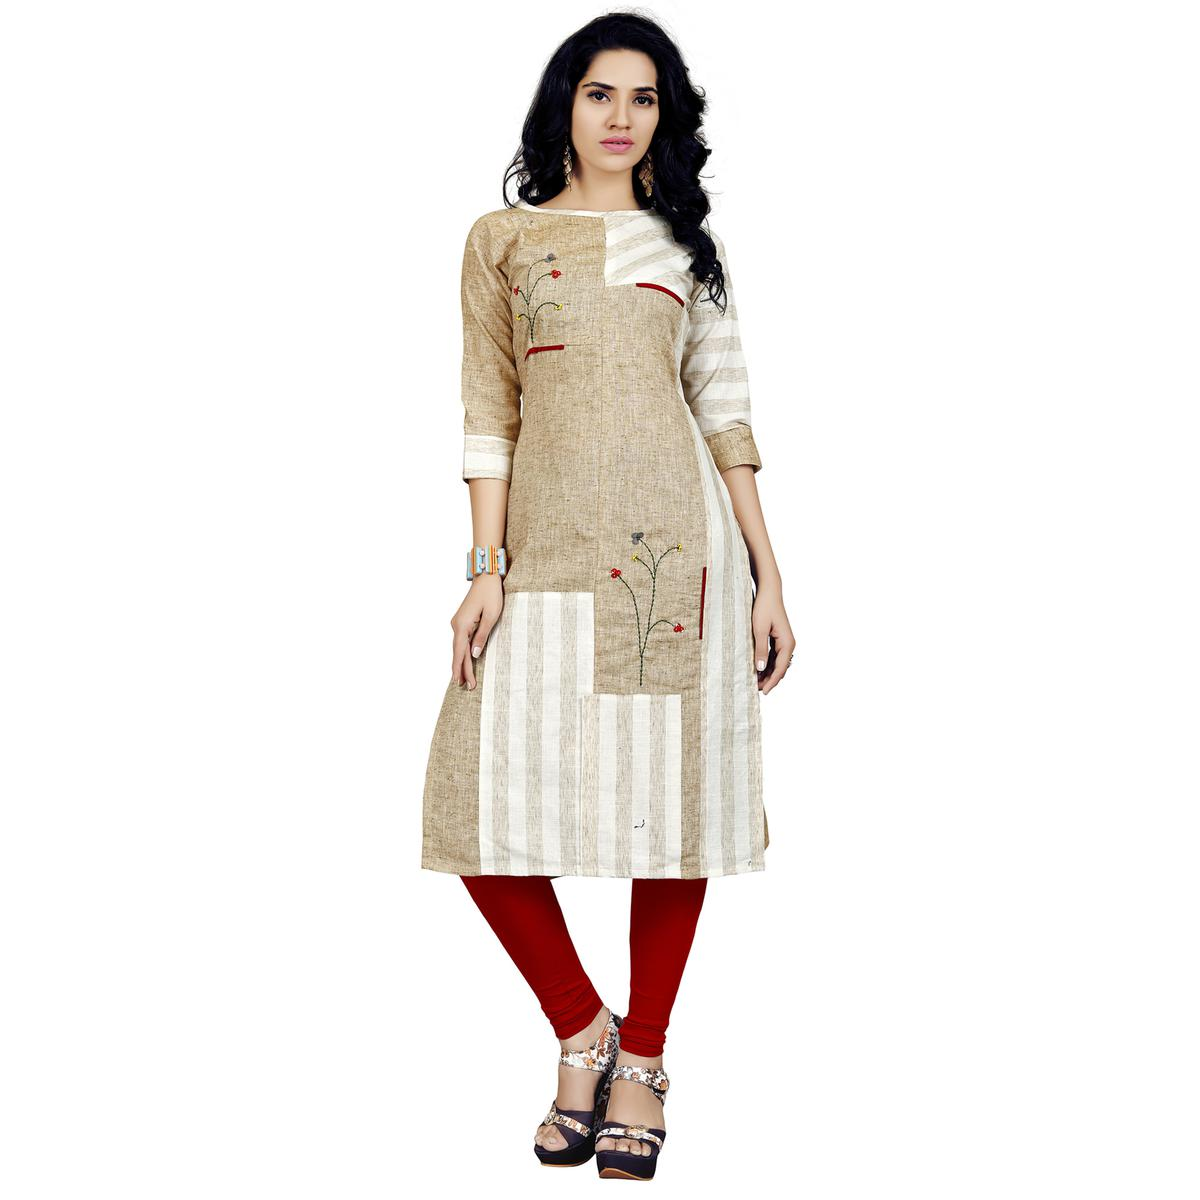 Imposing Beige-White Colored Casual Printed Rayon Kurti